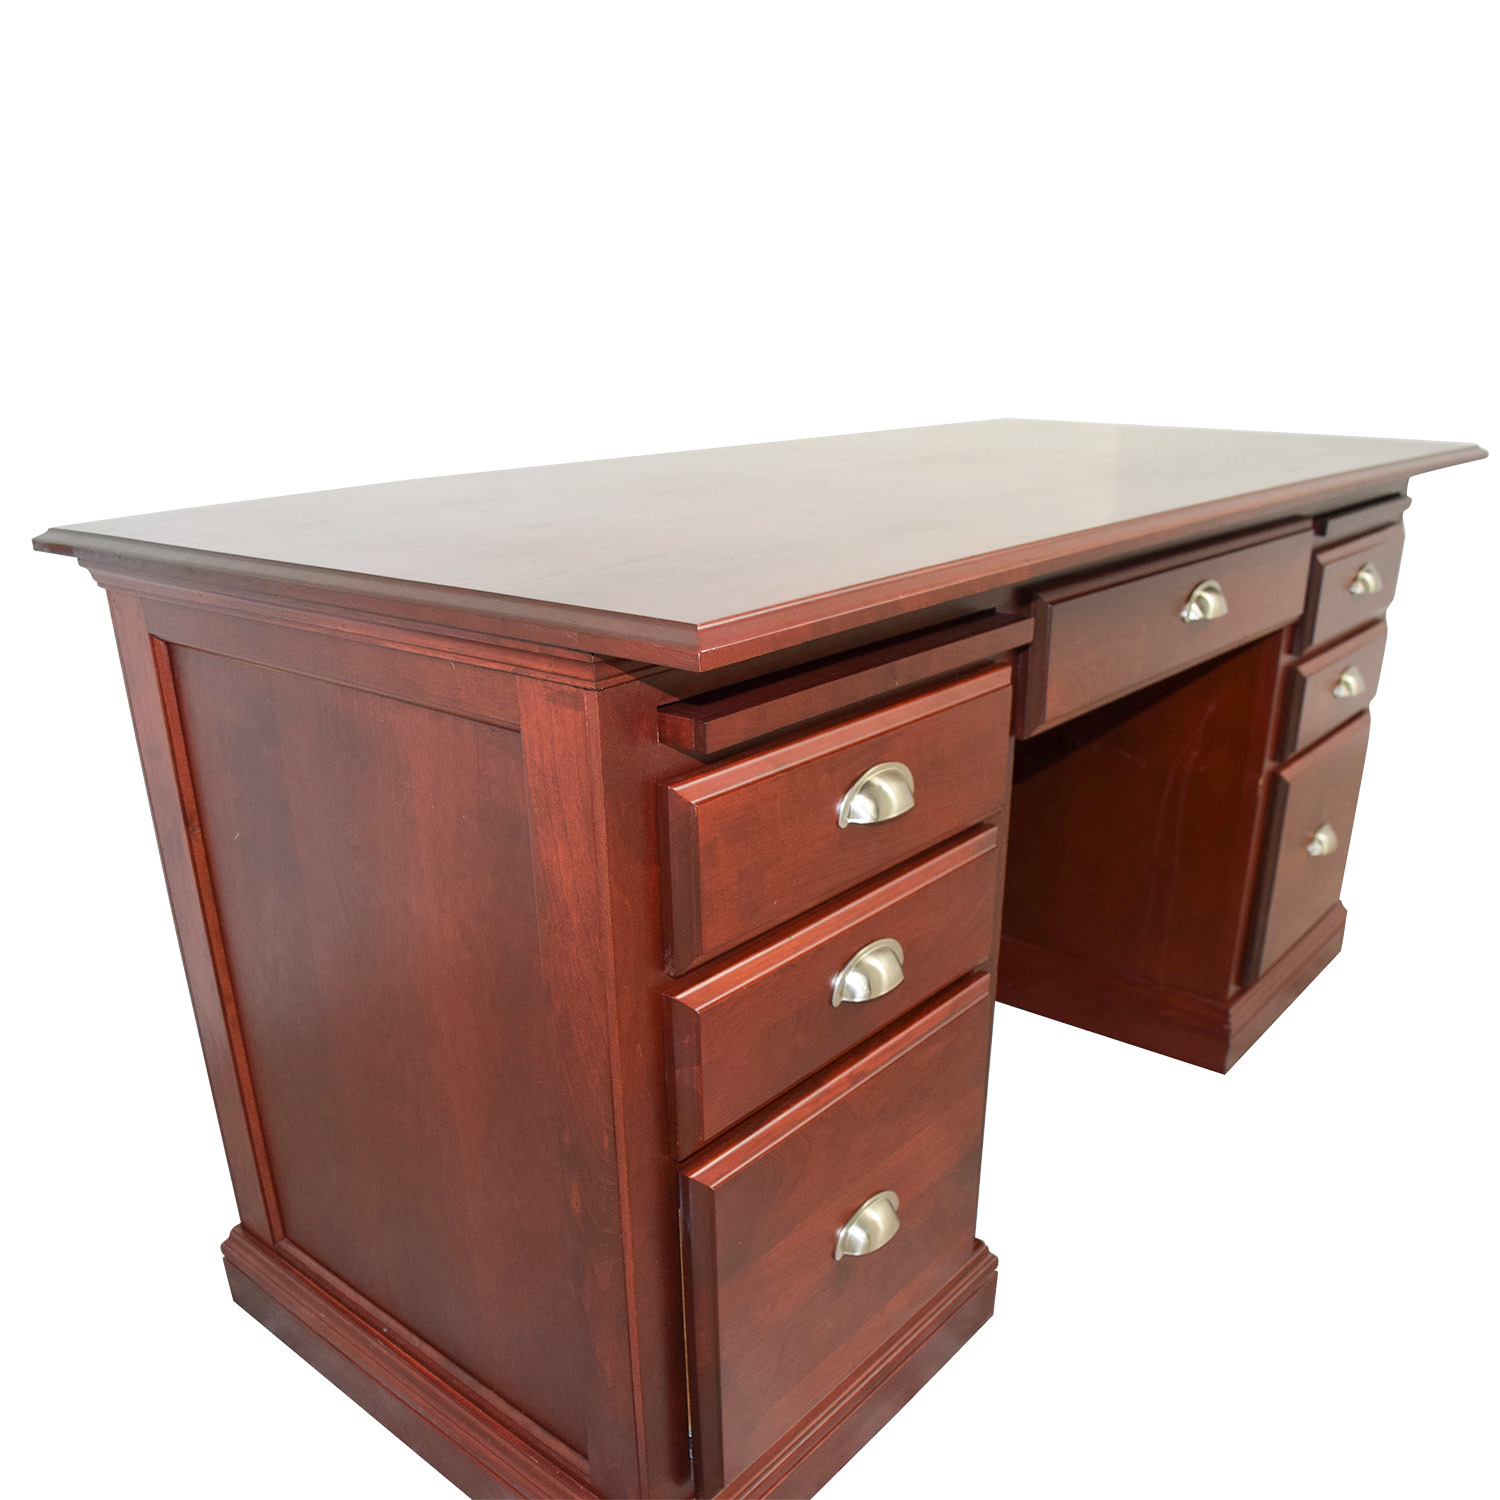 88 OFF  Woodcraft Woodcraft Custom Cherry Executive Desk